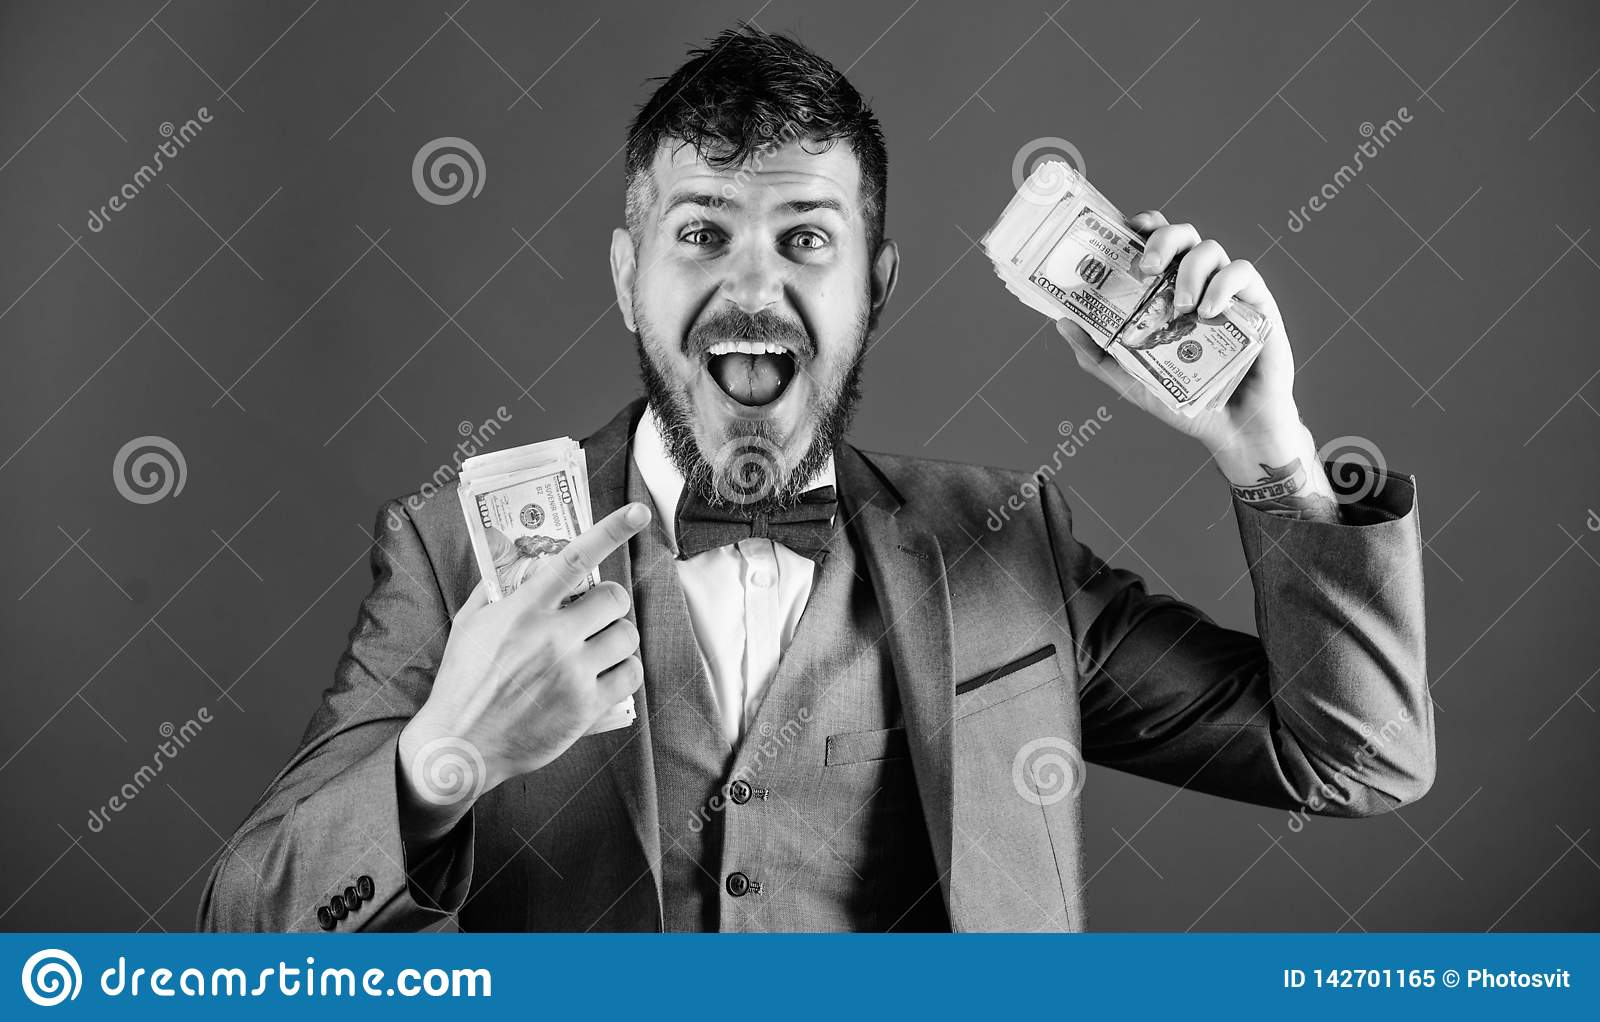 Businessman got cash money. Get cash easy and quickly. Cash transaction business. Man happy winner rich hold pile of